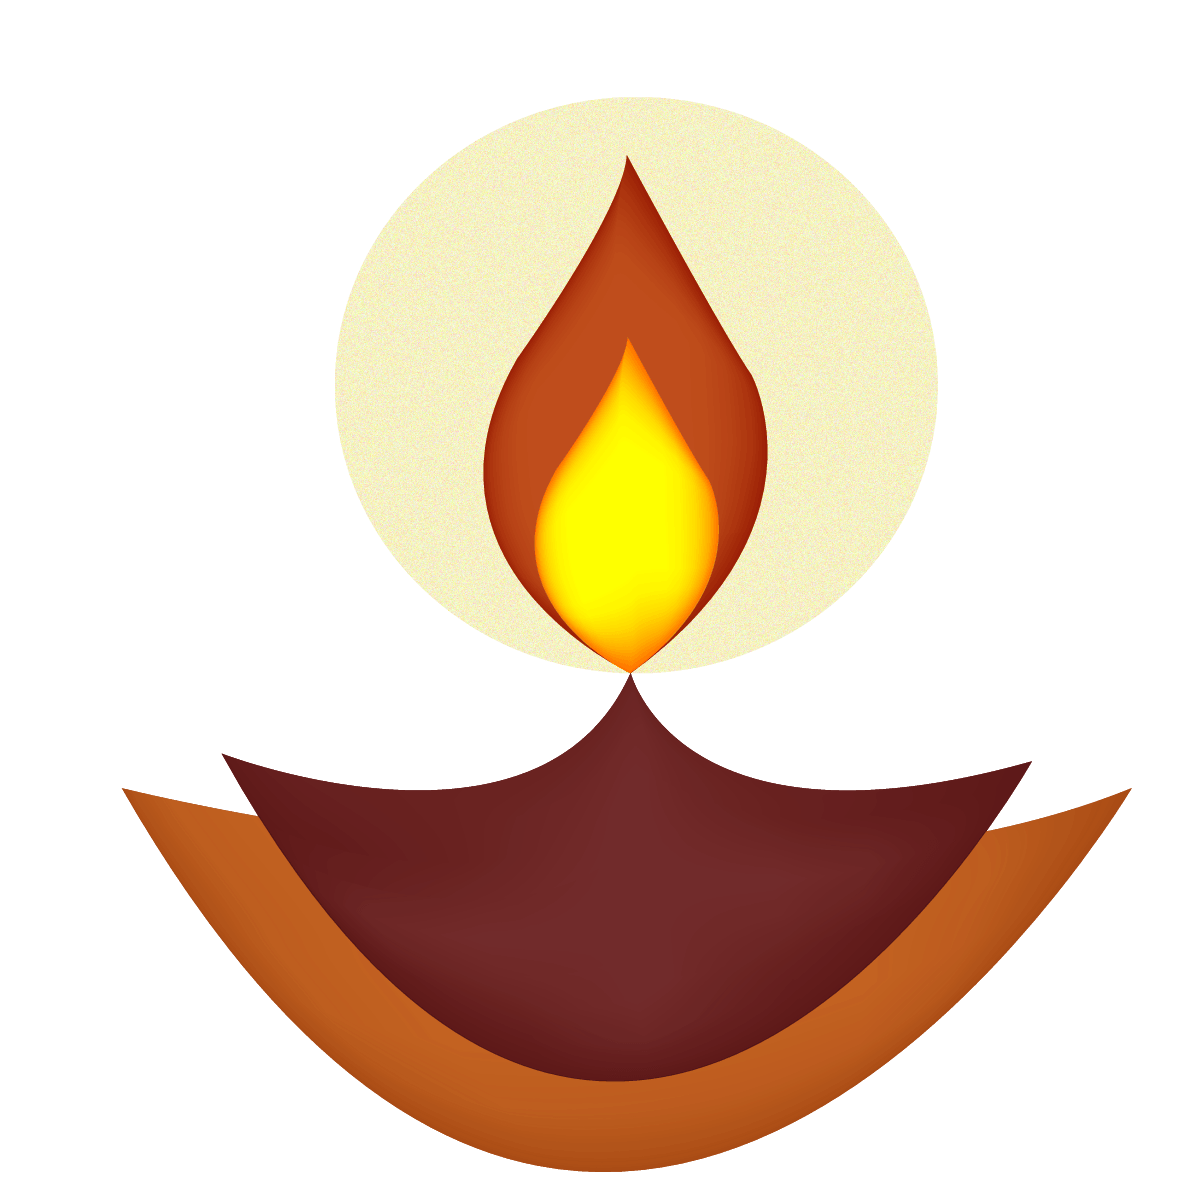 Happy Diwali Clipart 2018